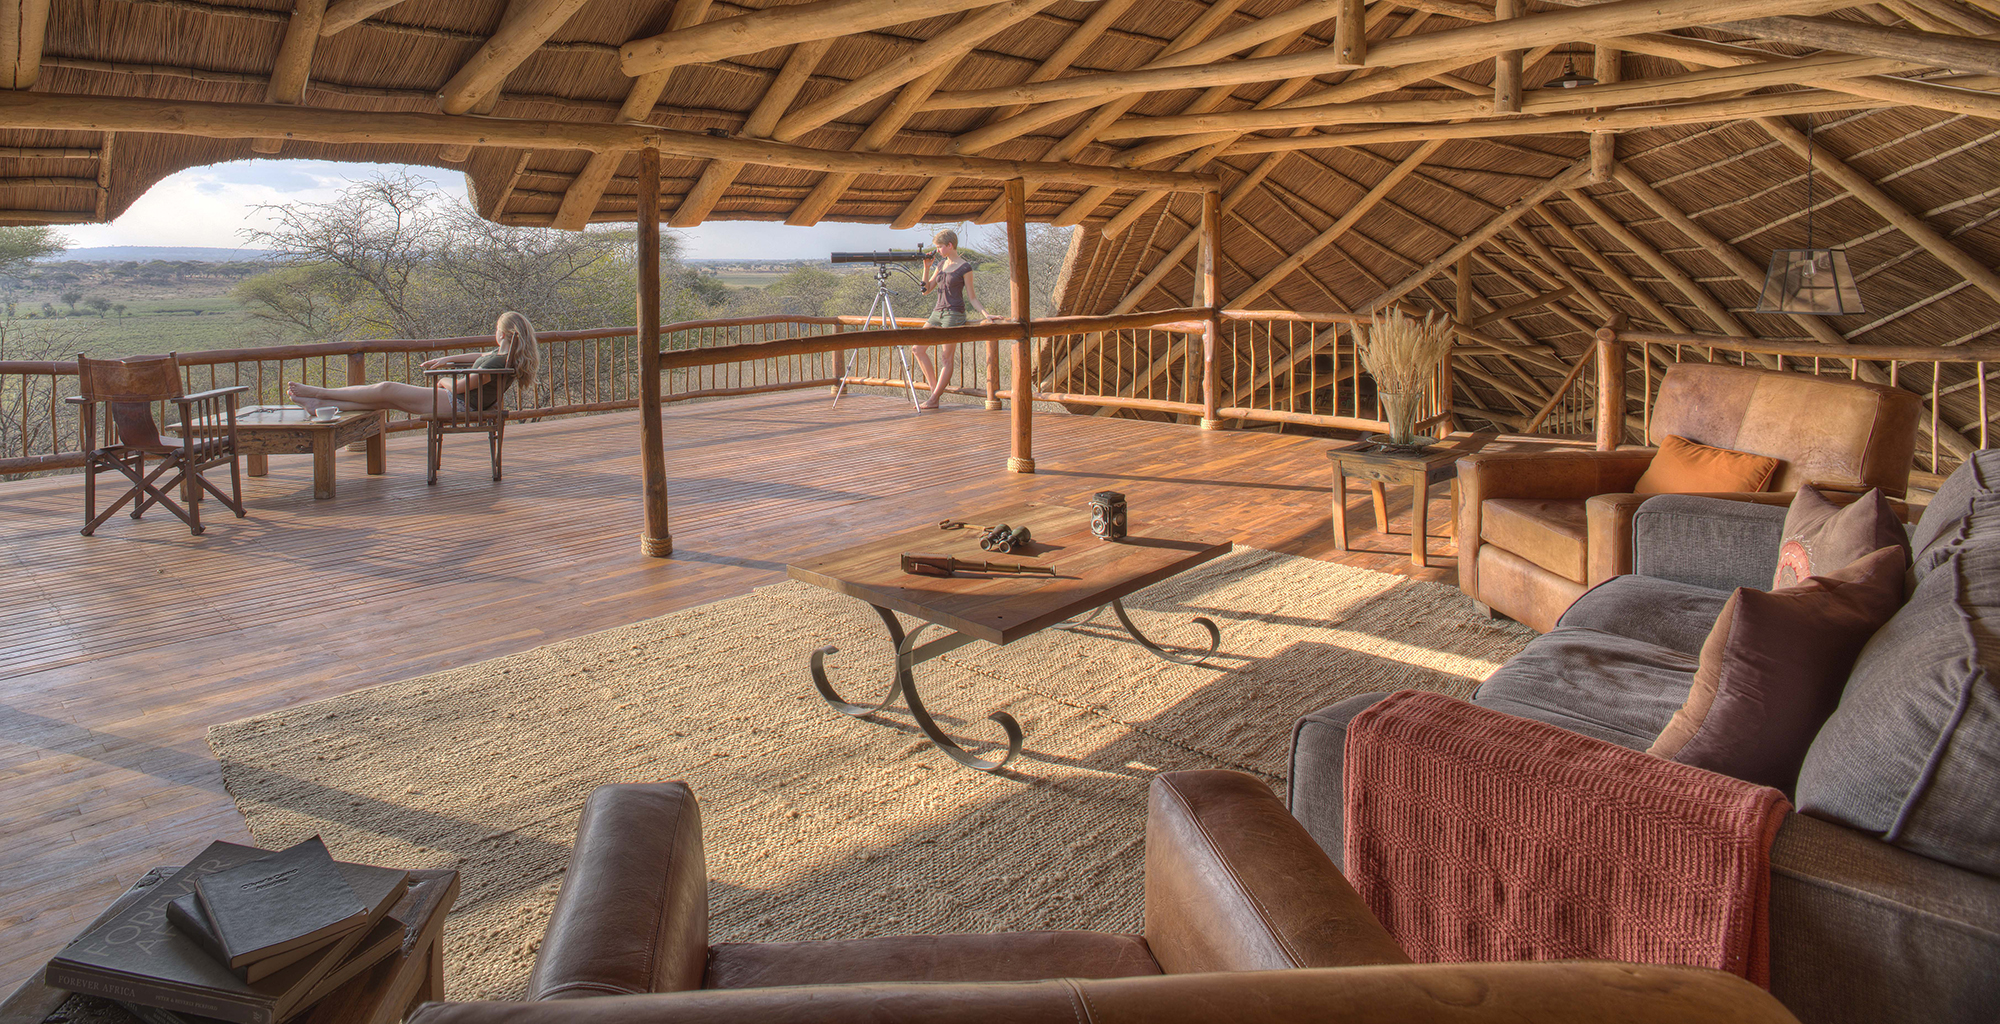 Tanzania-Olivers-Tented-Camp-Lounge-Deck